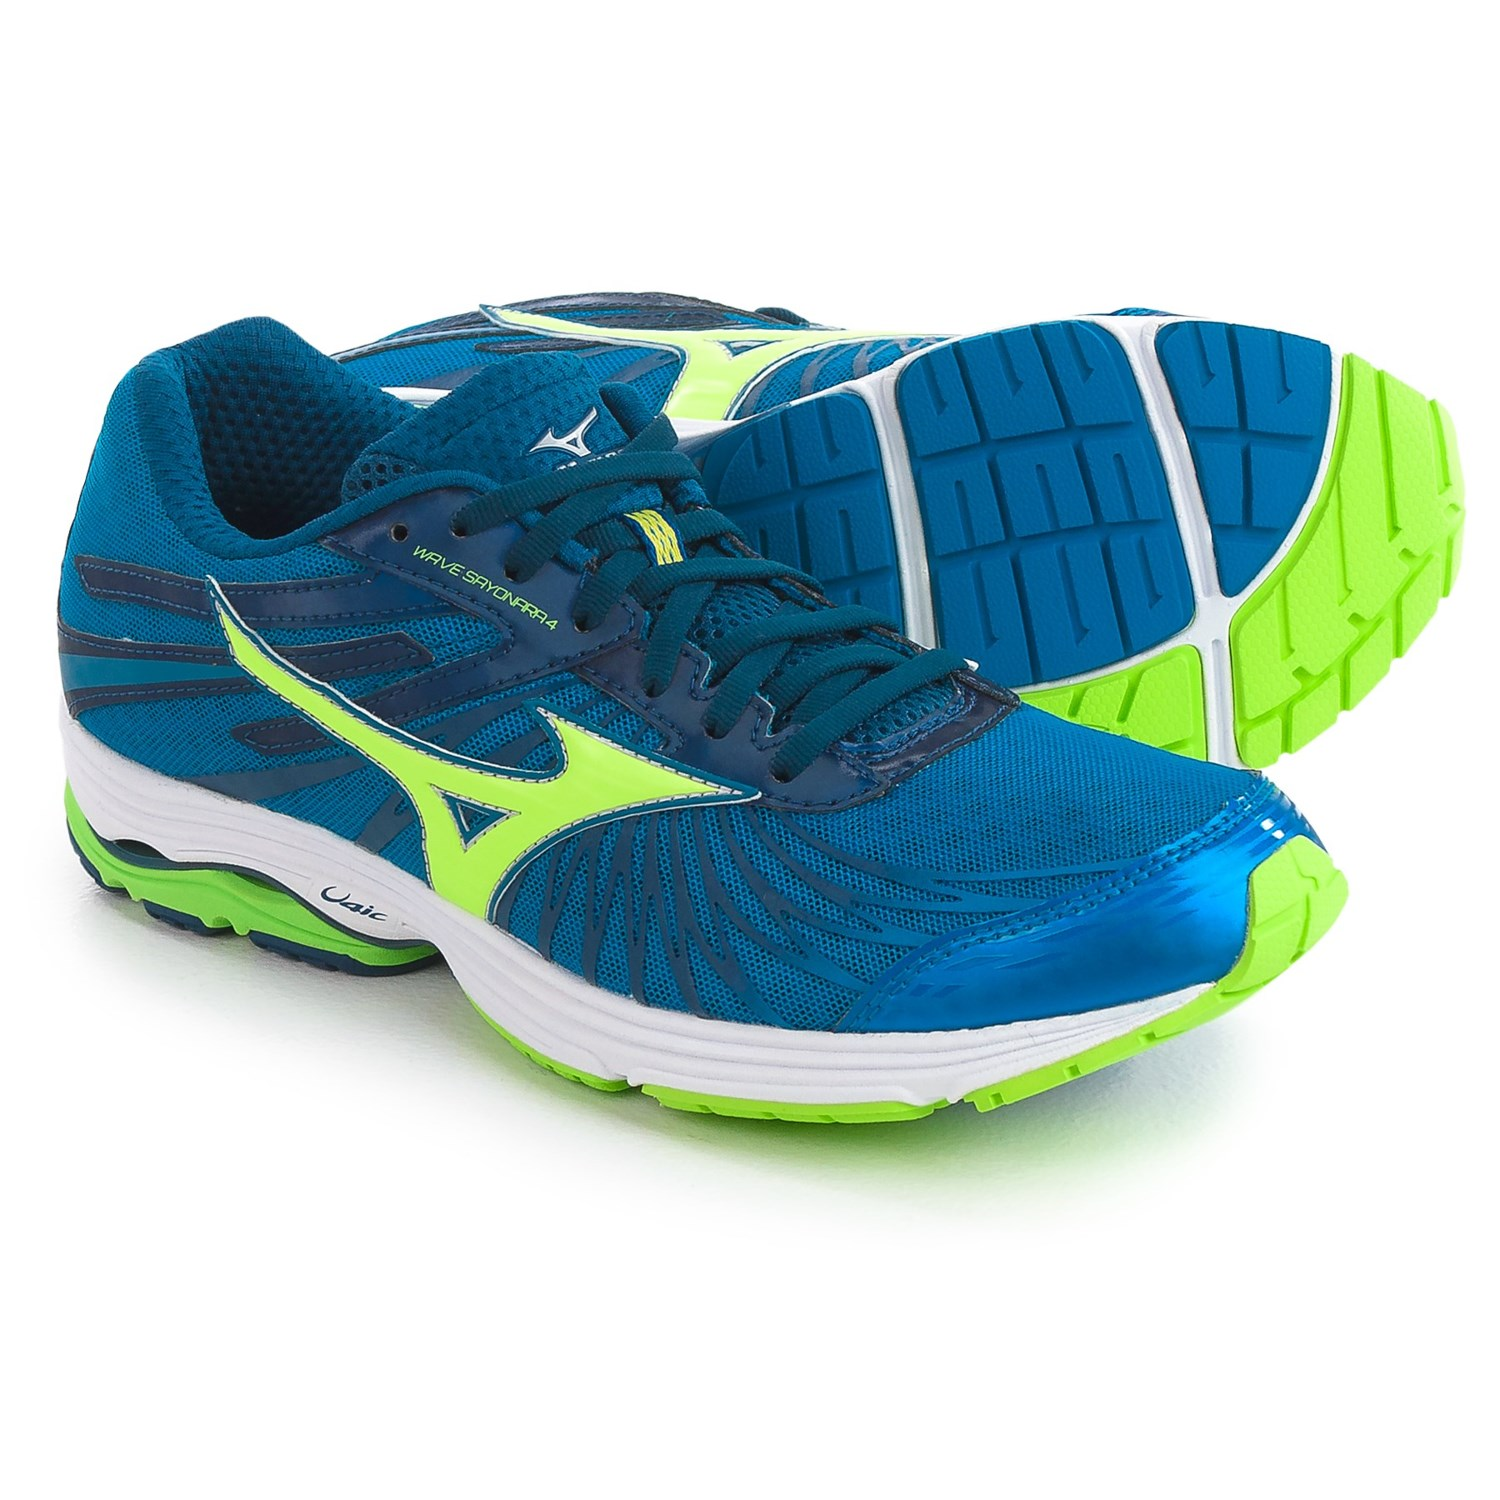 Soccers Running Shoes